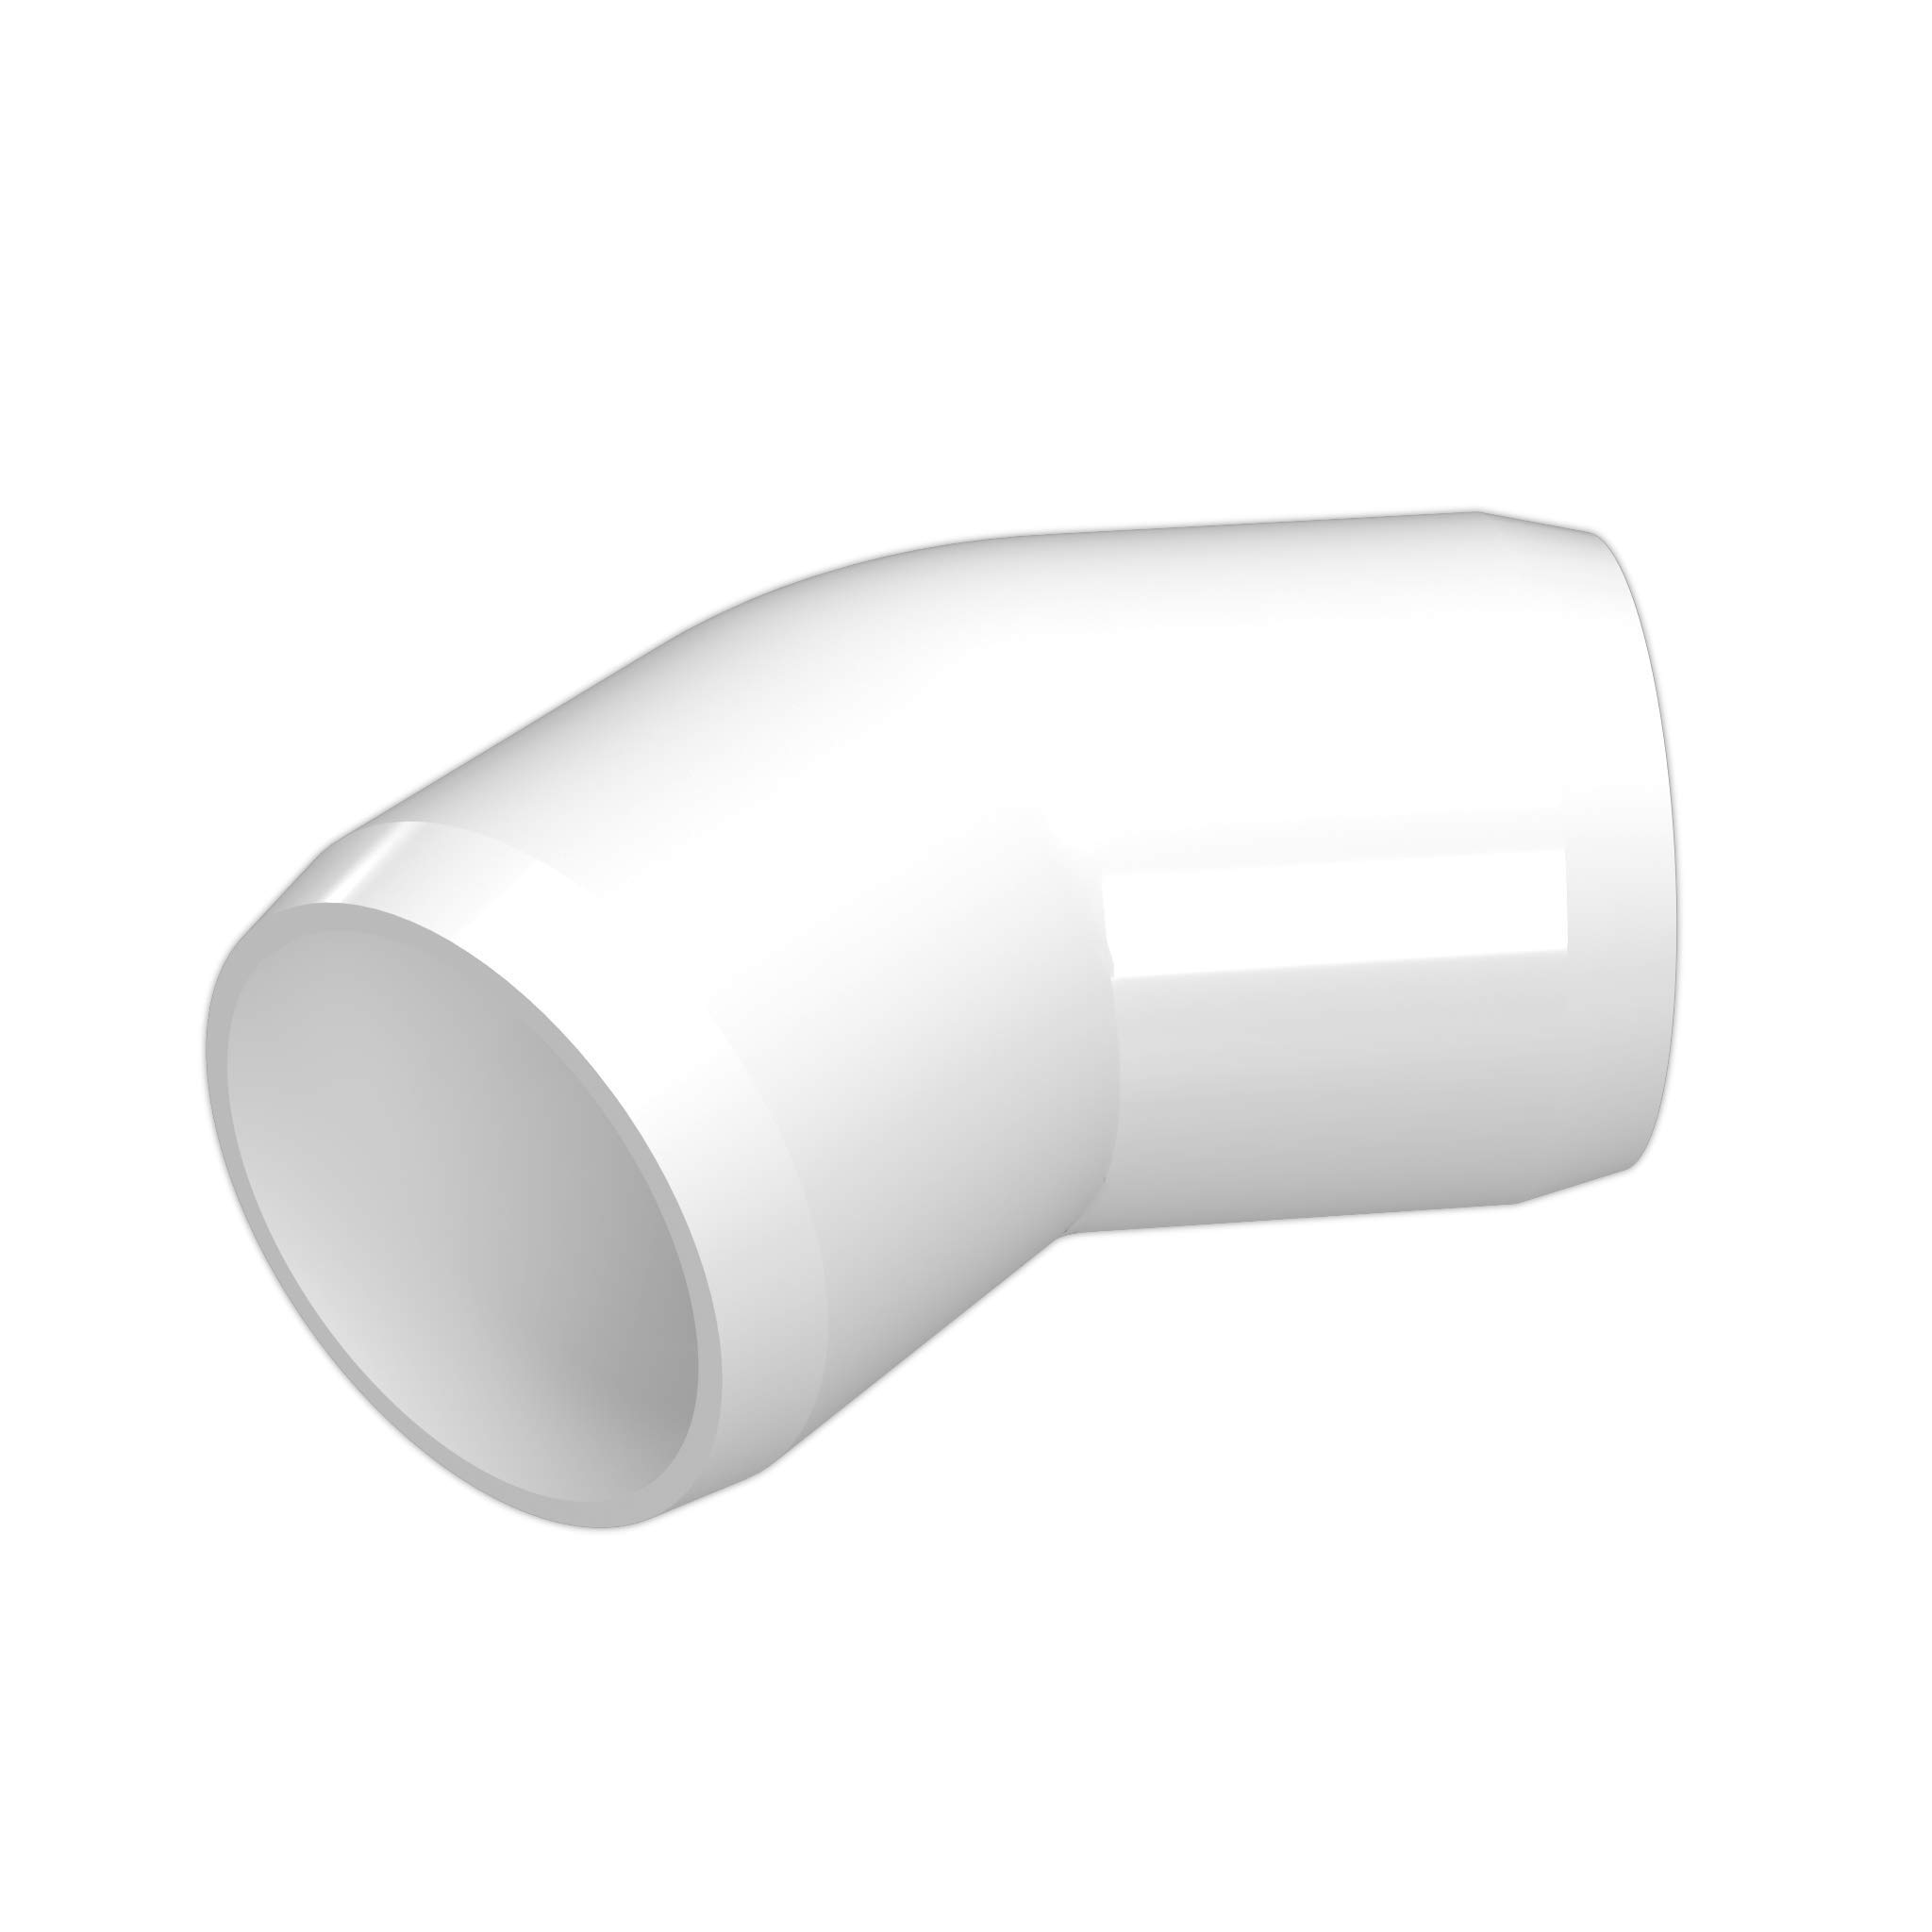 FORMUFIT F03445E-WH-8 45 degree Elbow PVC Fitting, Furniture Grade, 3/4'' Size, White (Pack of 8)